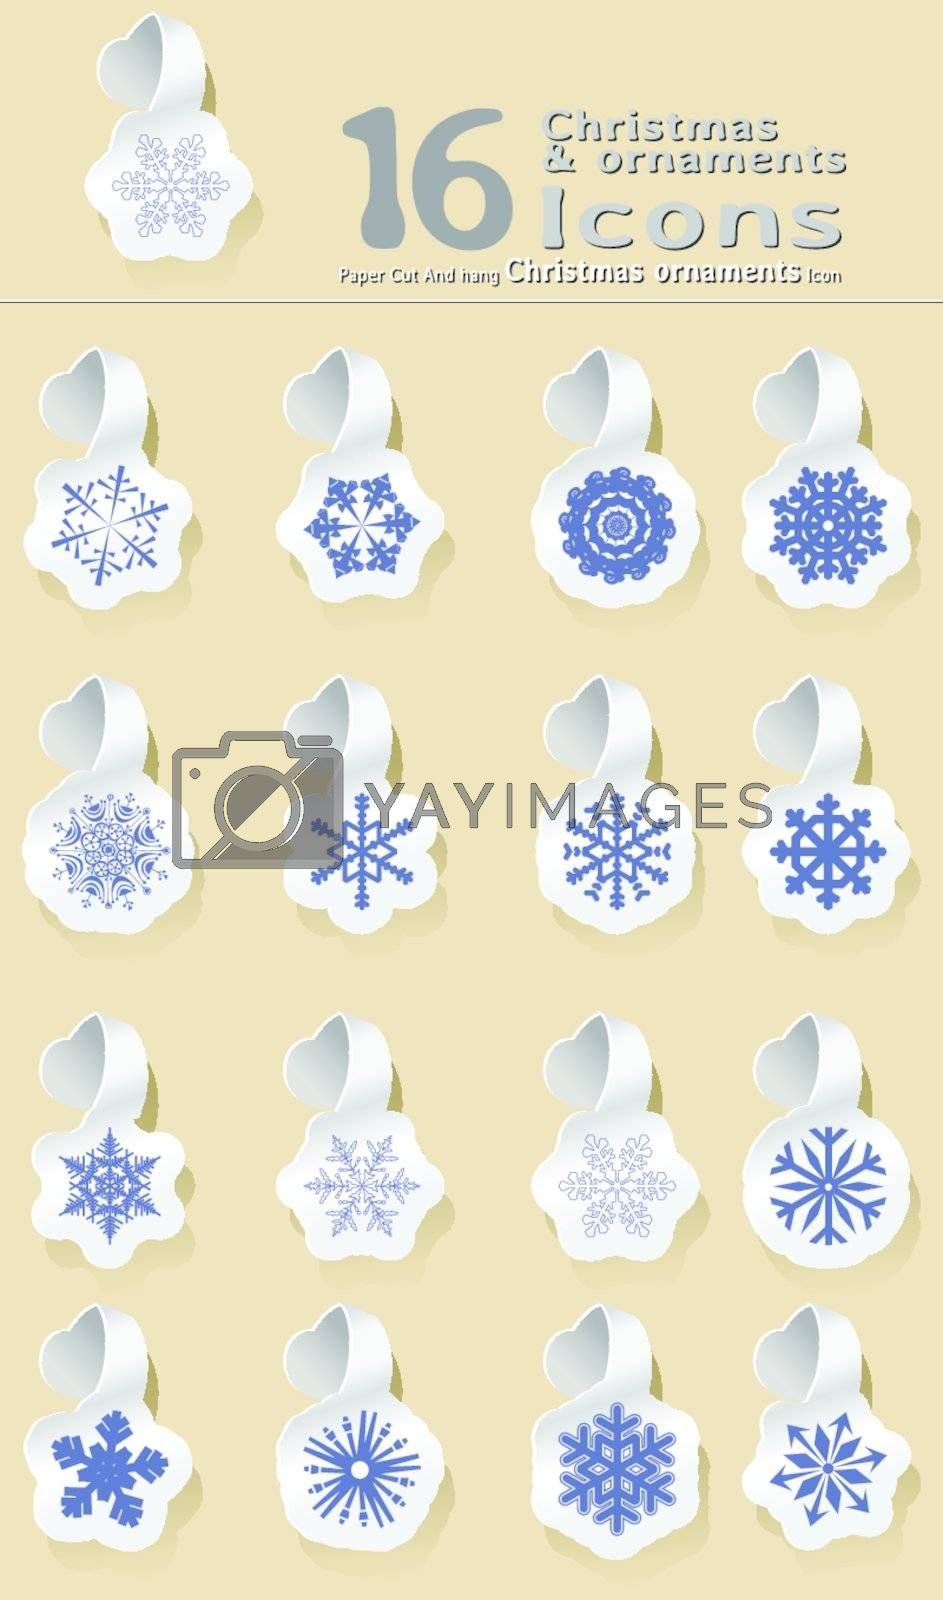 set of paper cut and hanging Christmas and snowflake